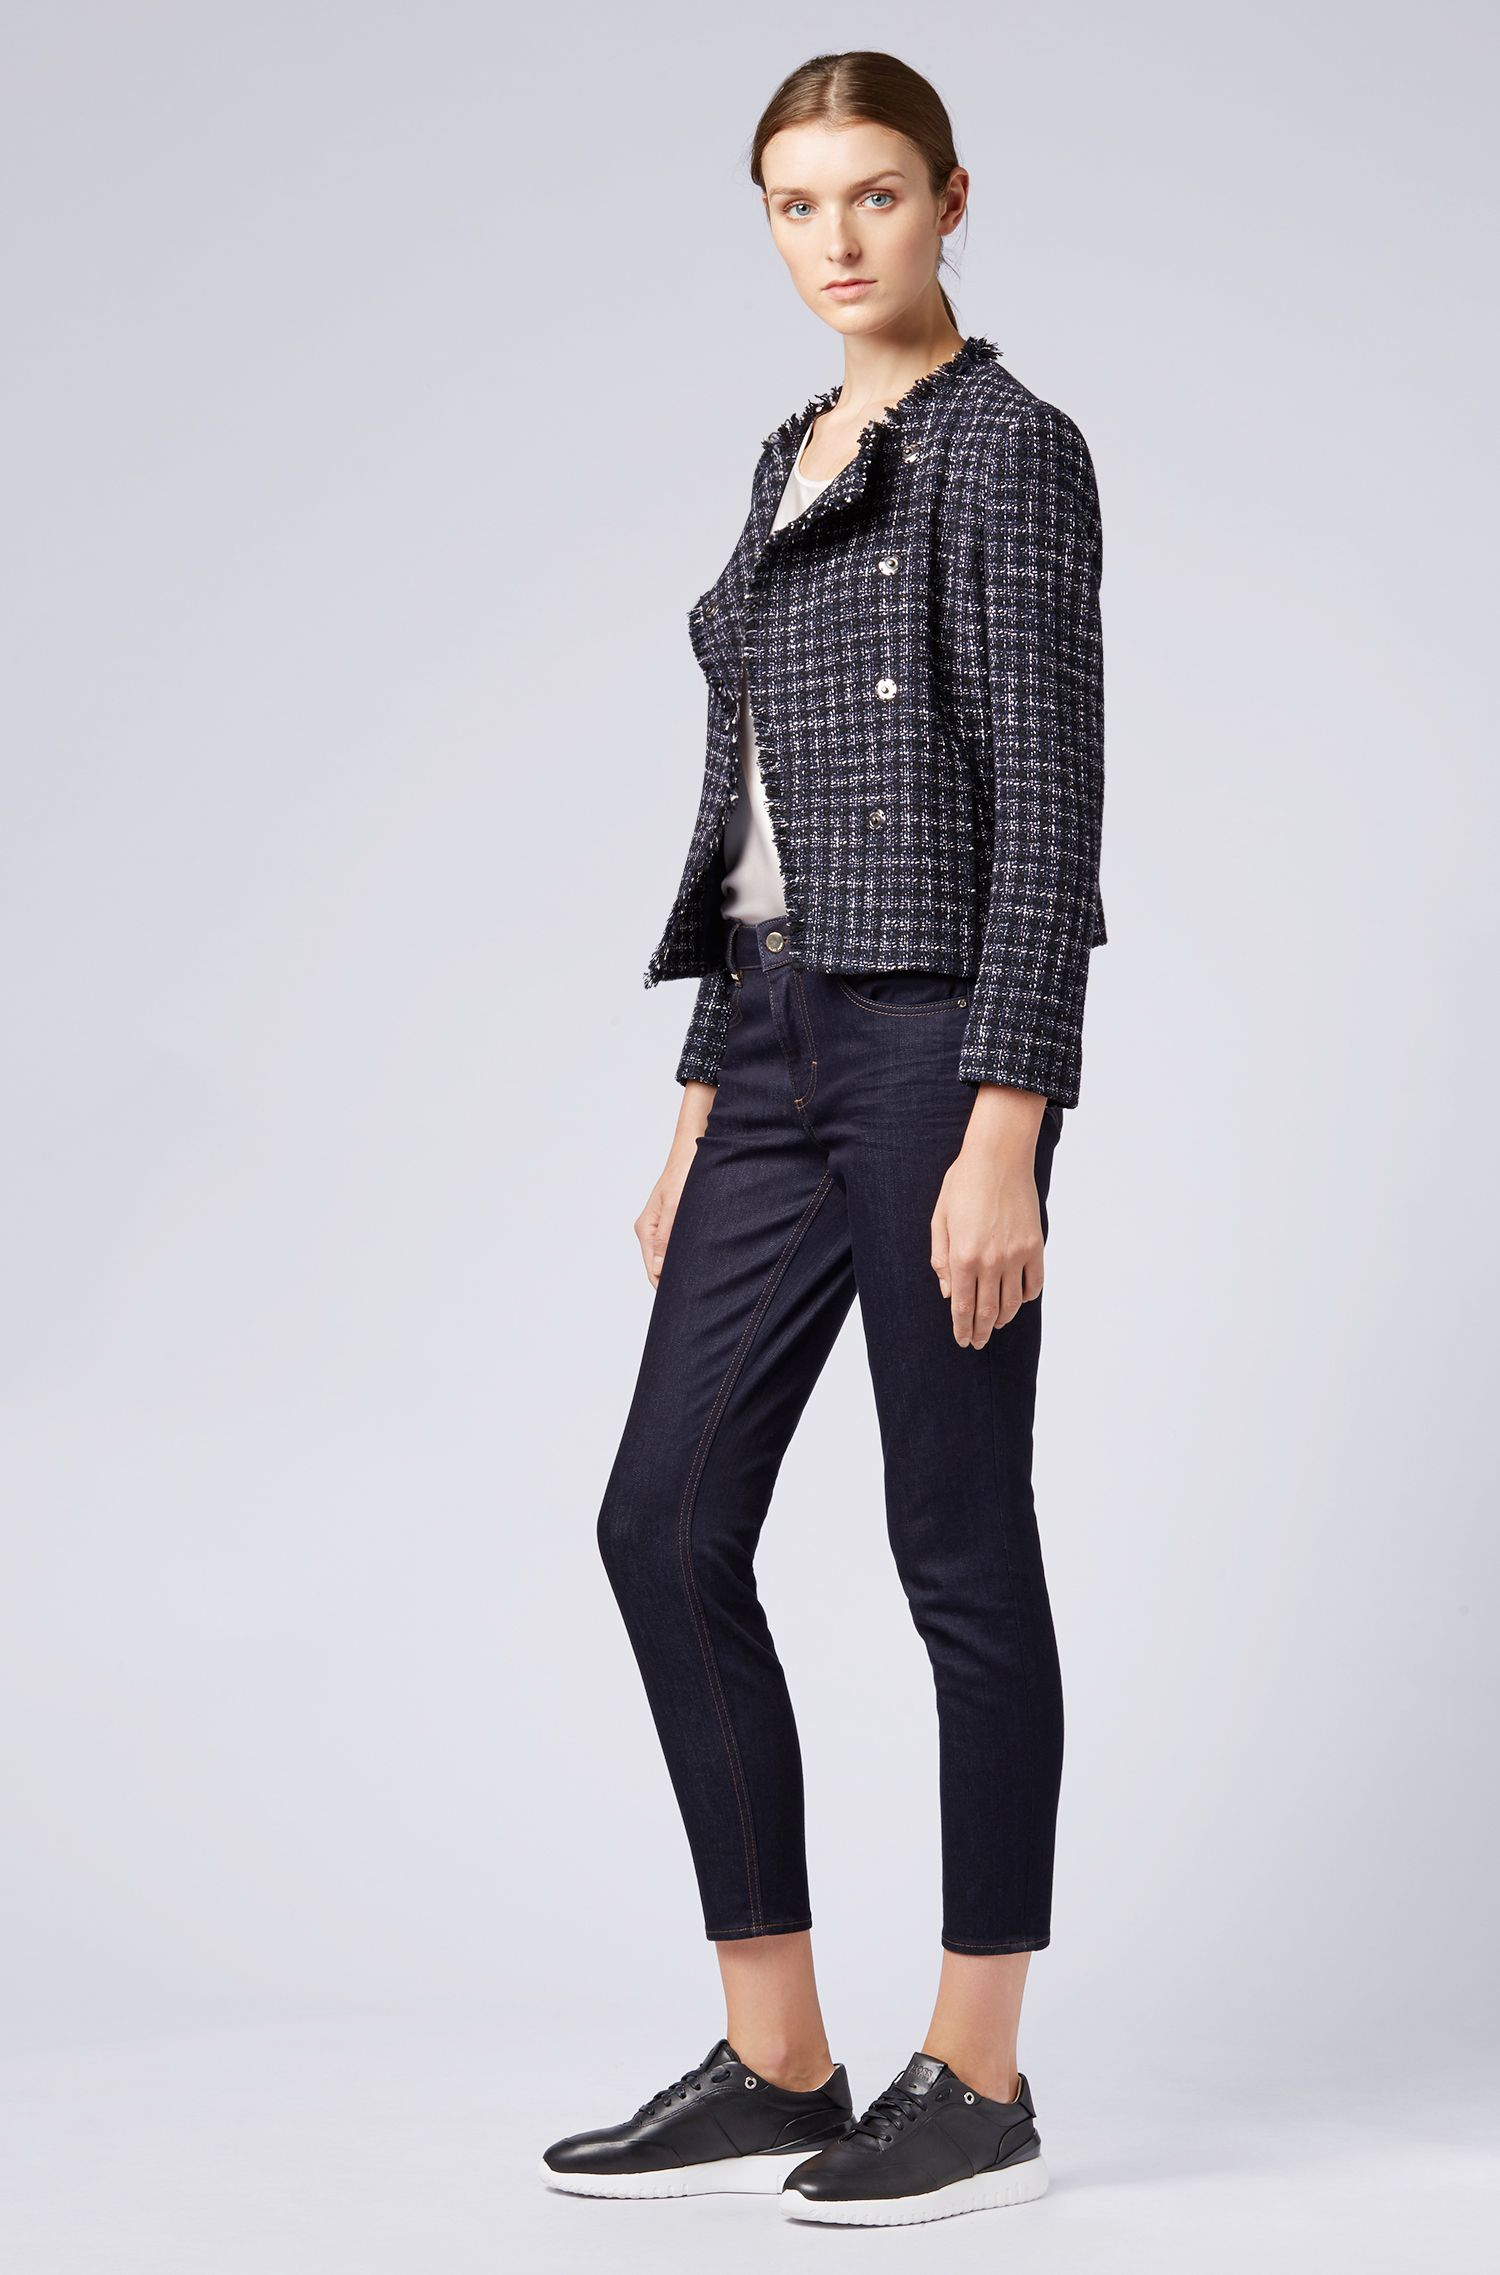 Relaxed-fit Italian tweed jacket with frayed edges, Patterned